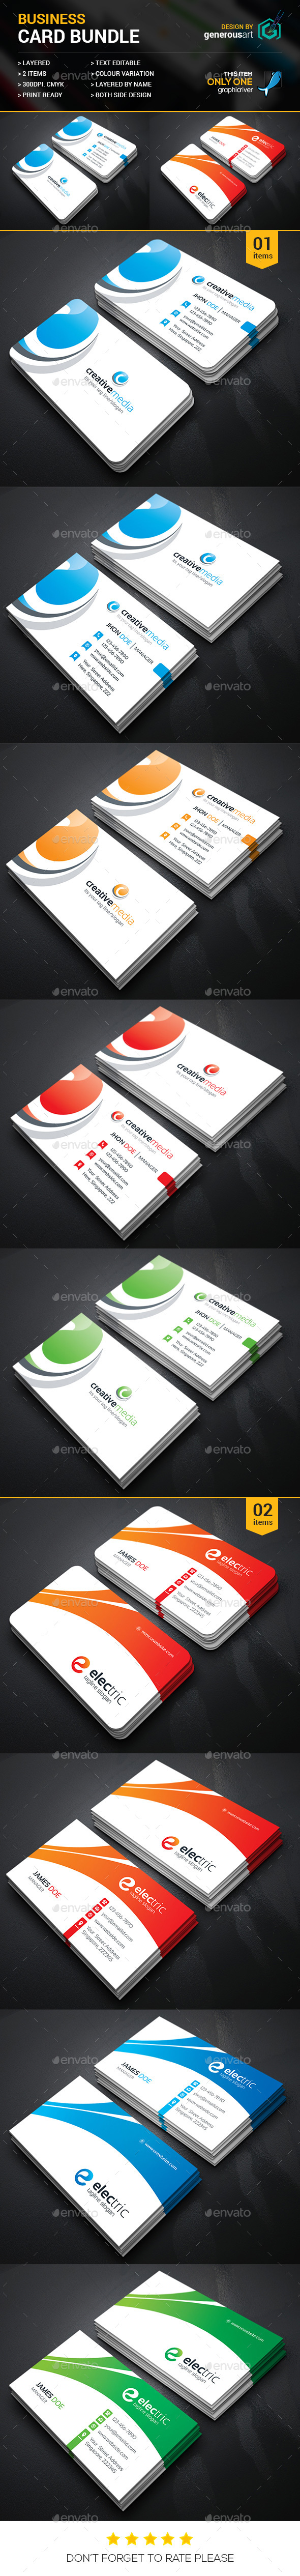 Business Card Bundle 2 in 1 Vol.25